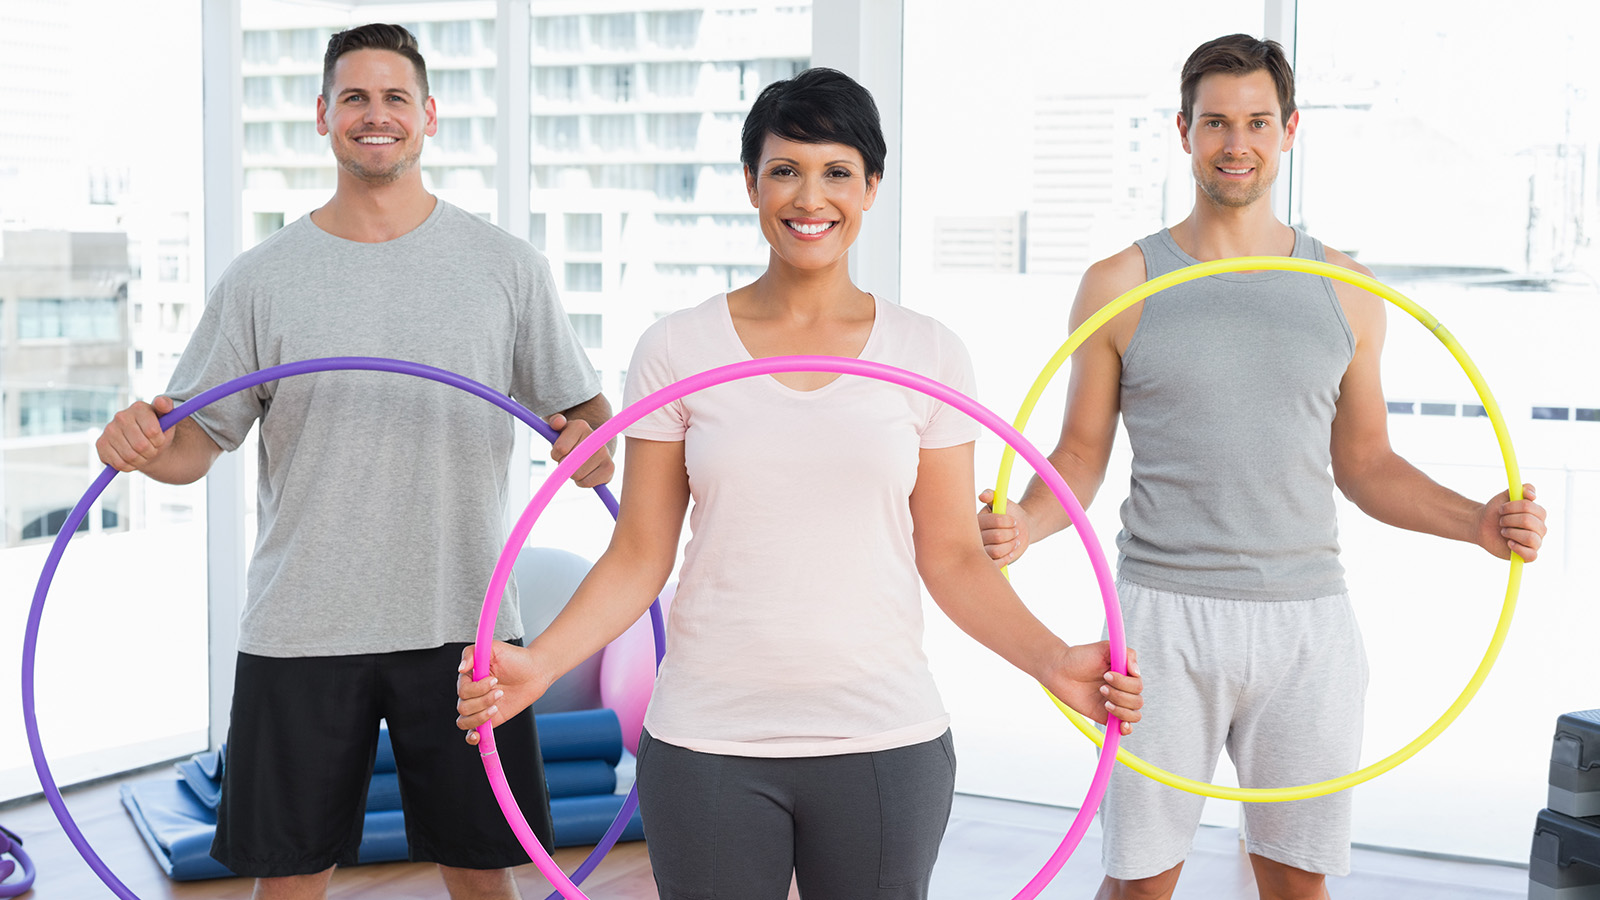 How a hula hoop can improve workplace performance